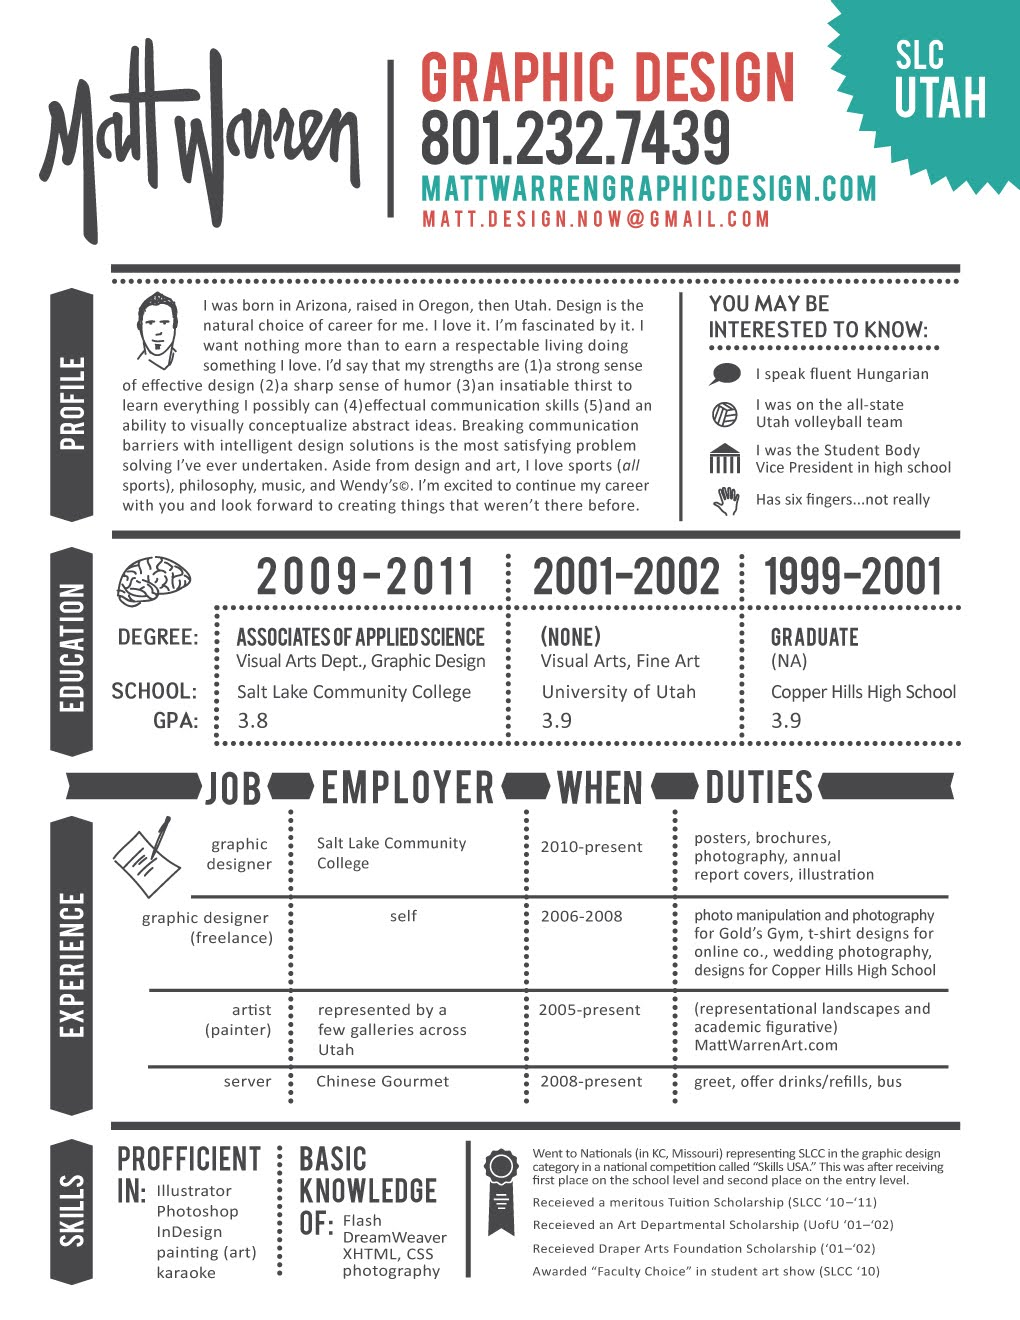 Creative Graphic Resume Designs Examples Wareout Com  Graphic Design Resume Objective